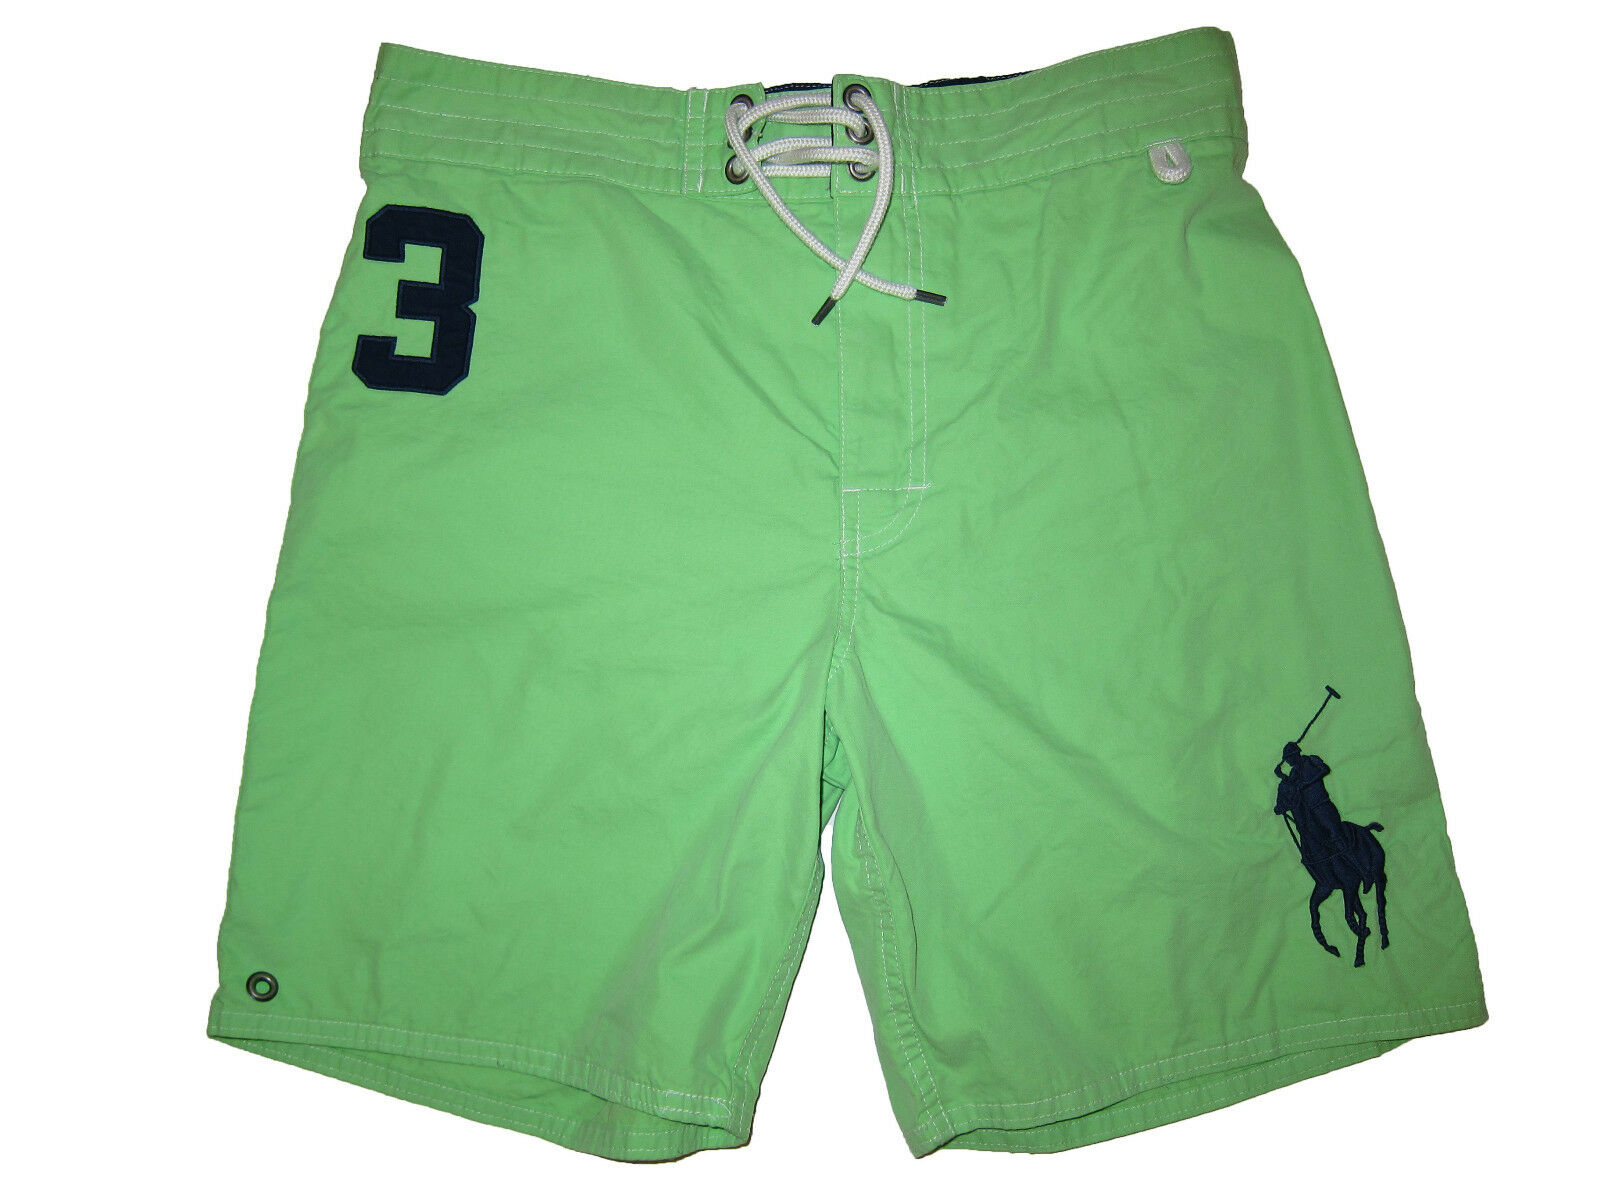 Polo Ralph Lauren Neon Green bluee Big Pony Swim Surf Board Shorts Suit Small